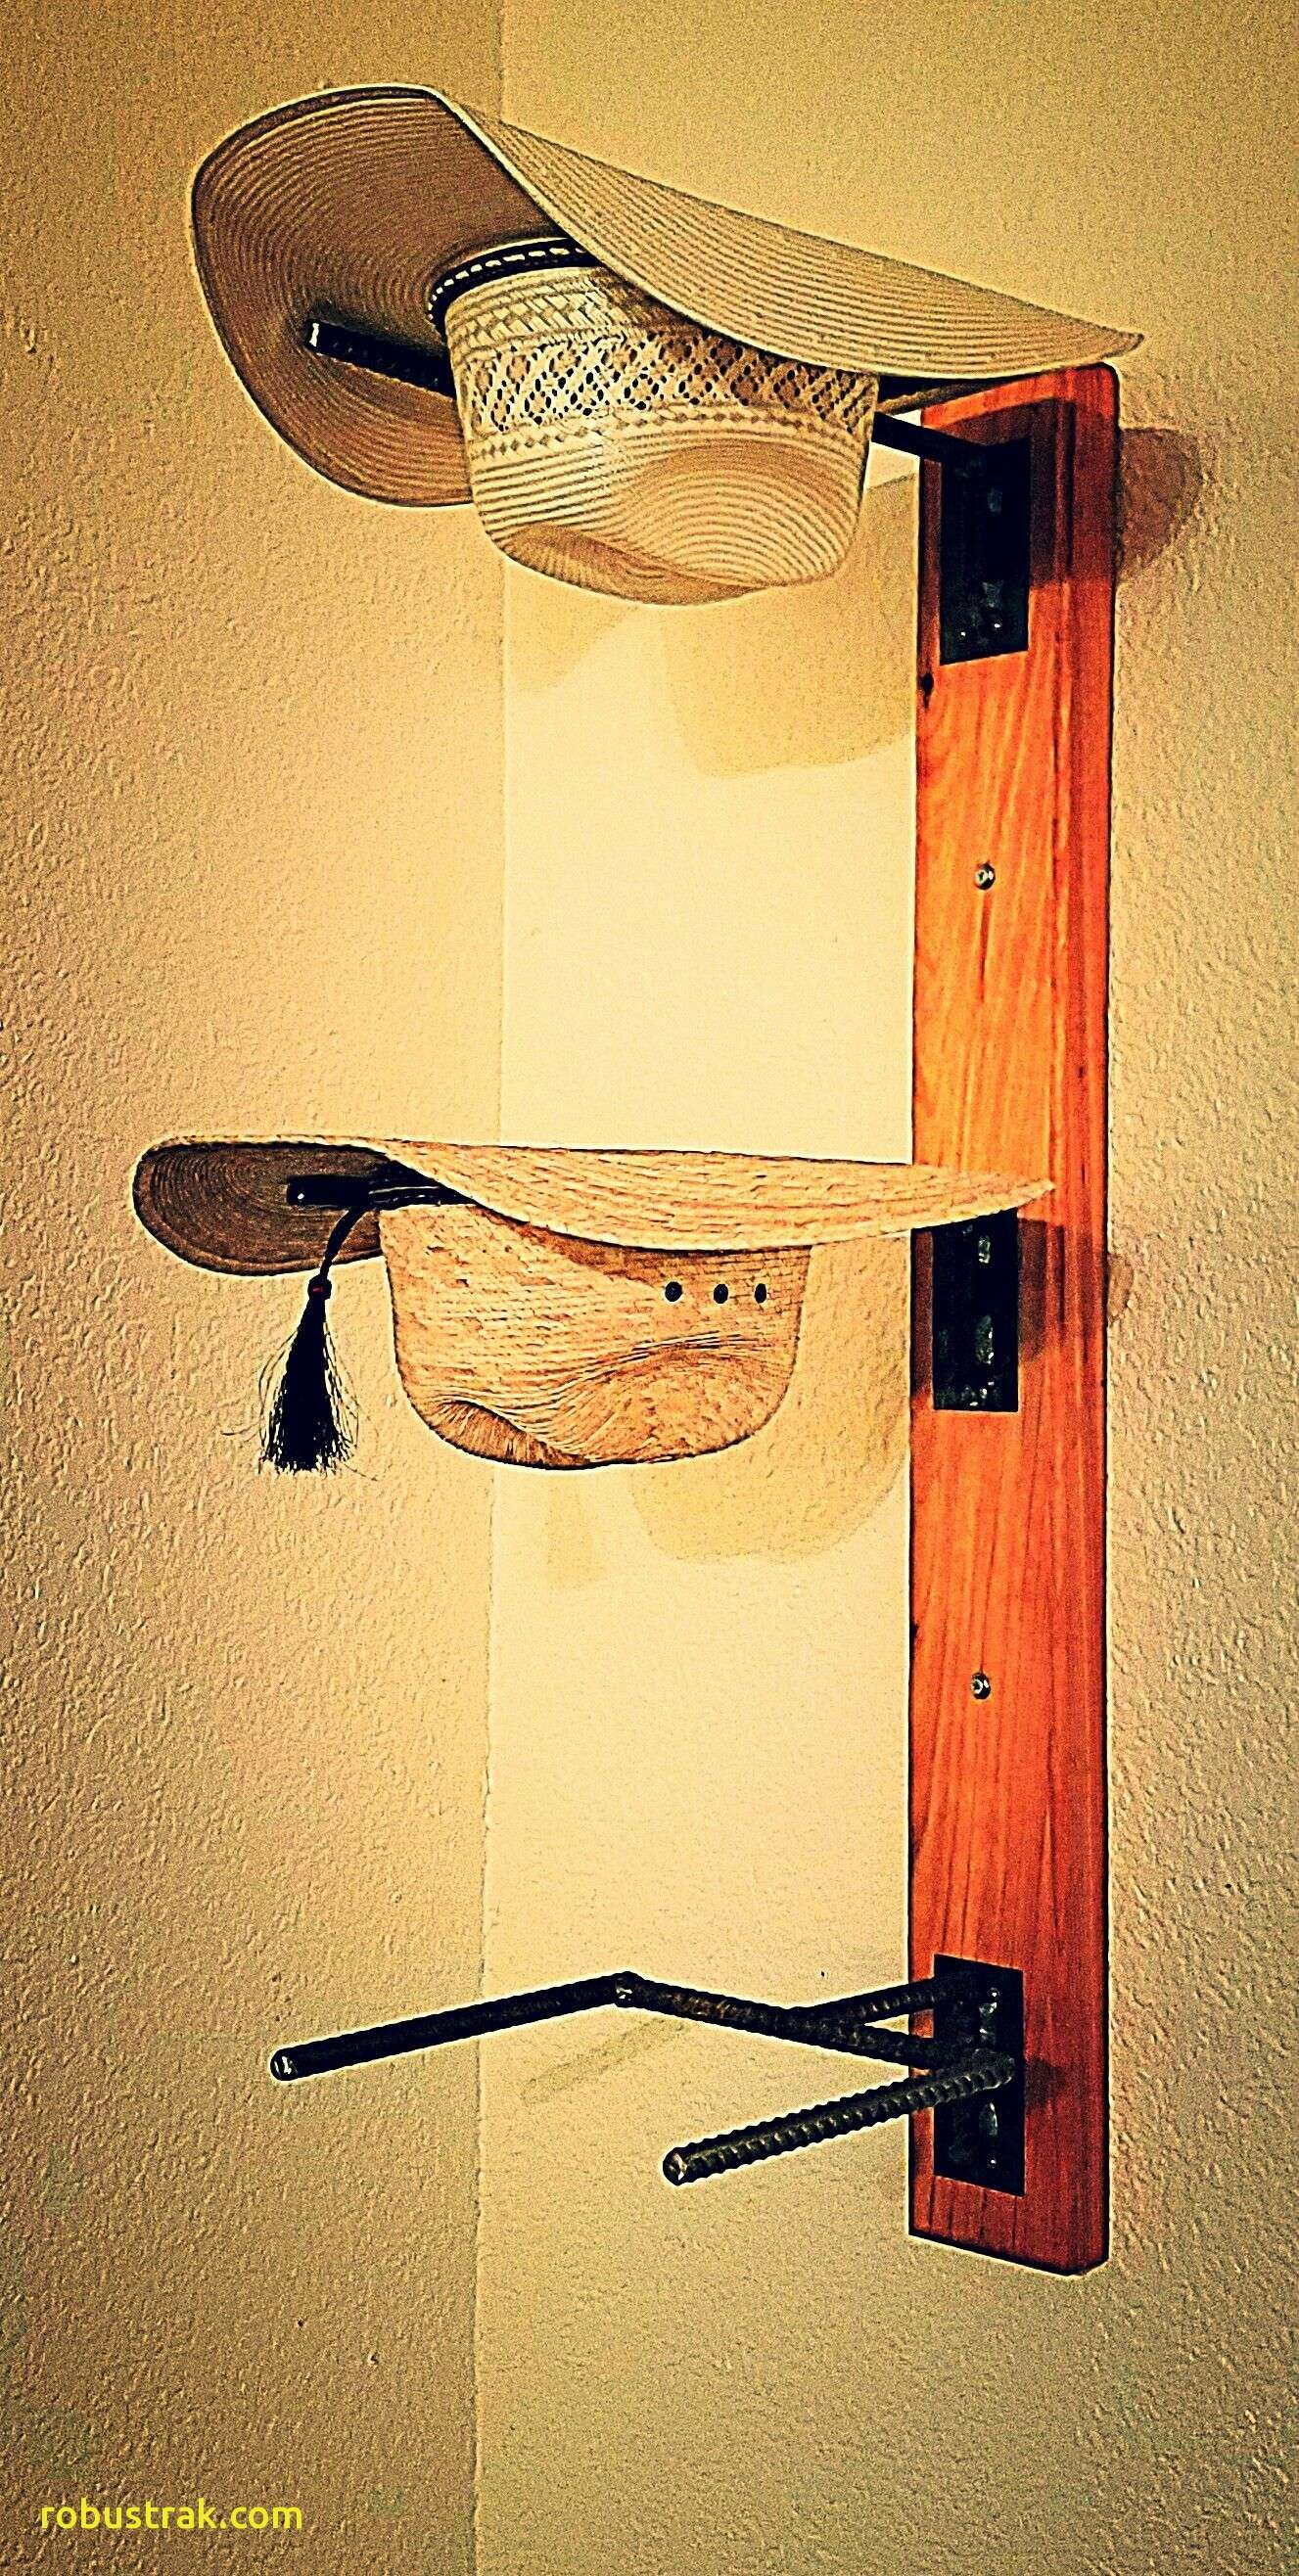 21 Diy Hat Rack Ideas To Make Your Hats More